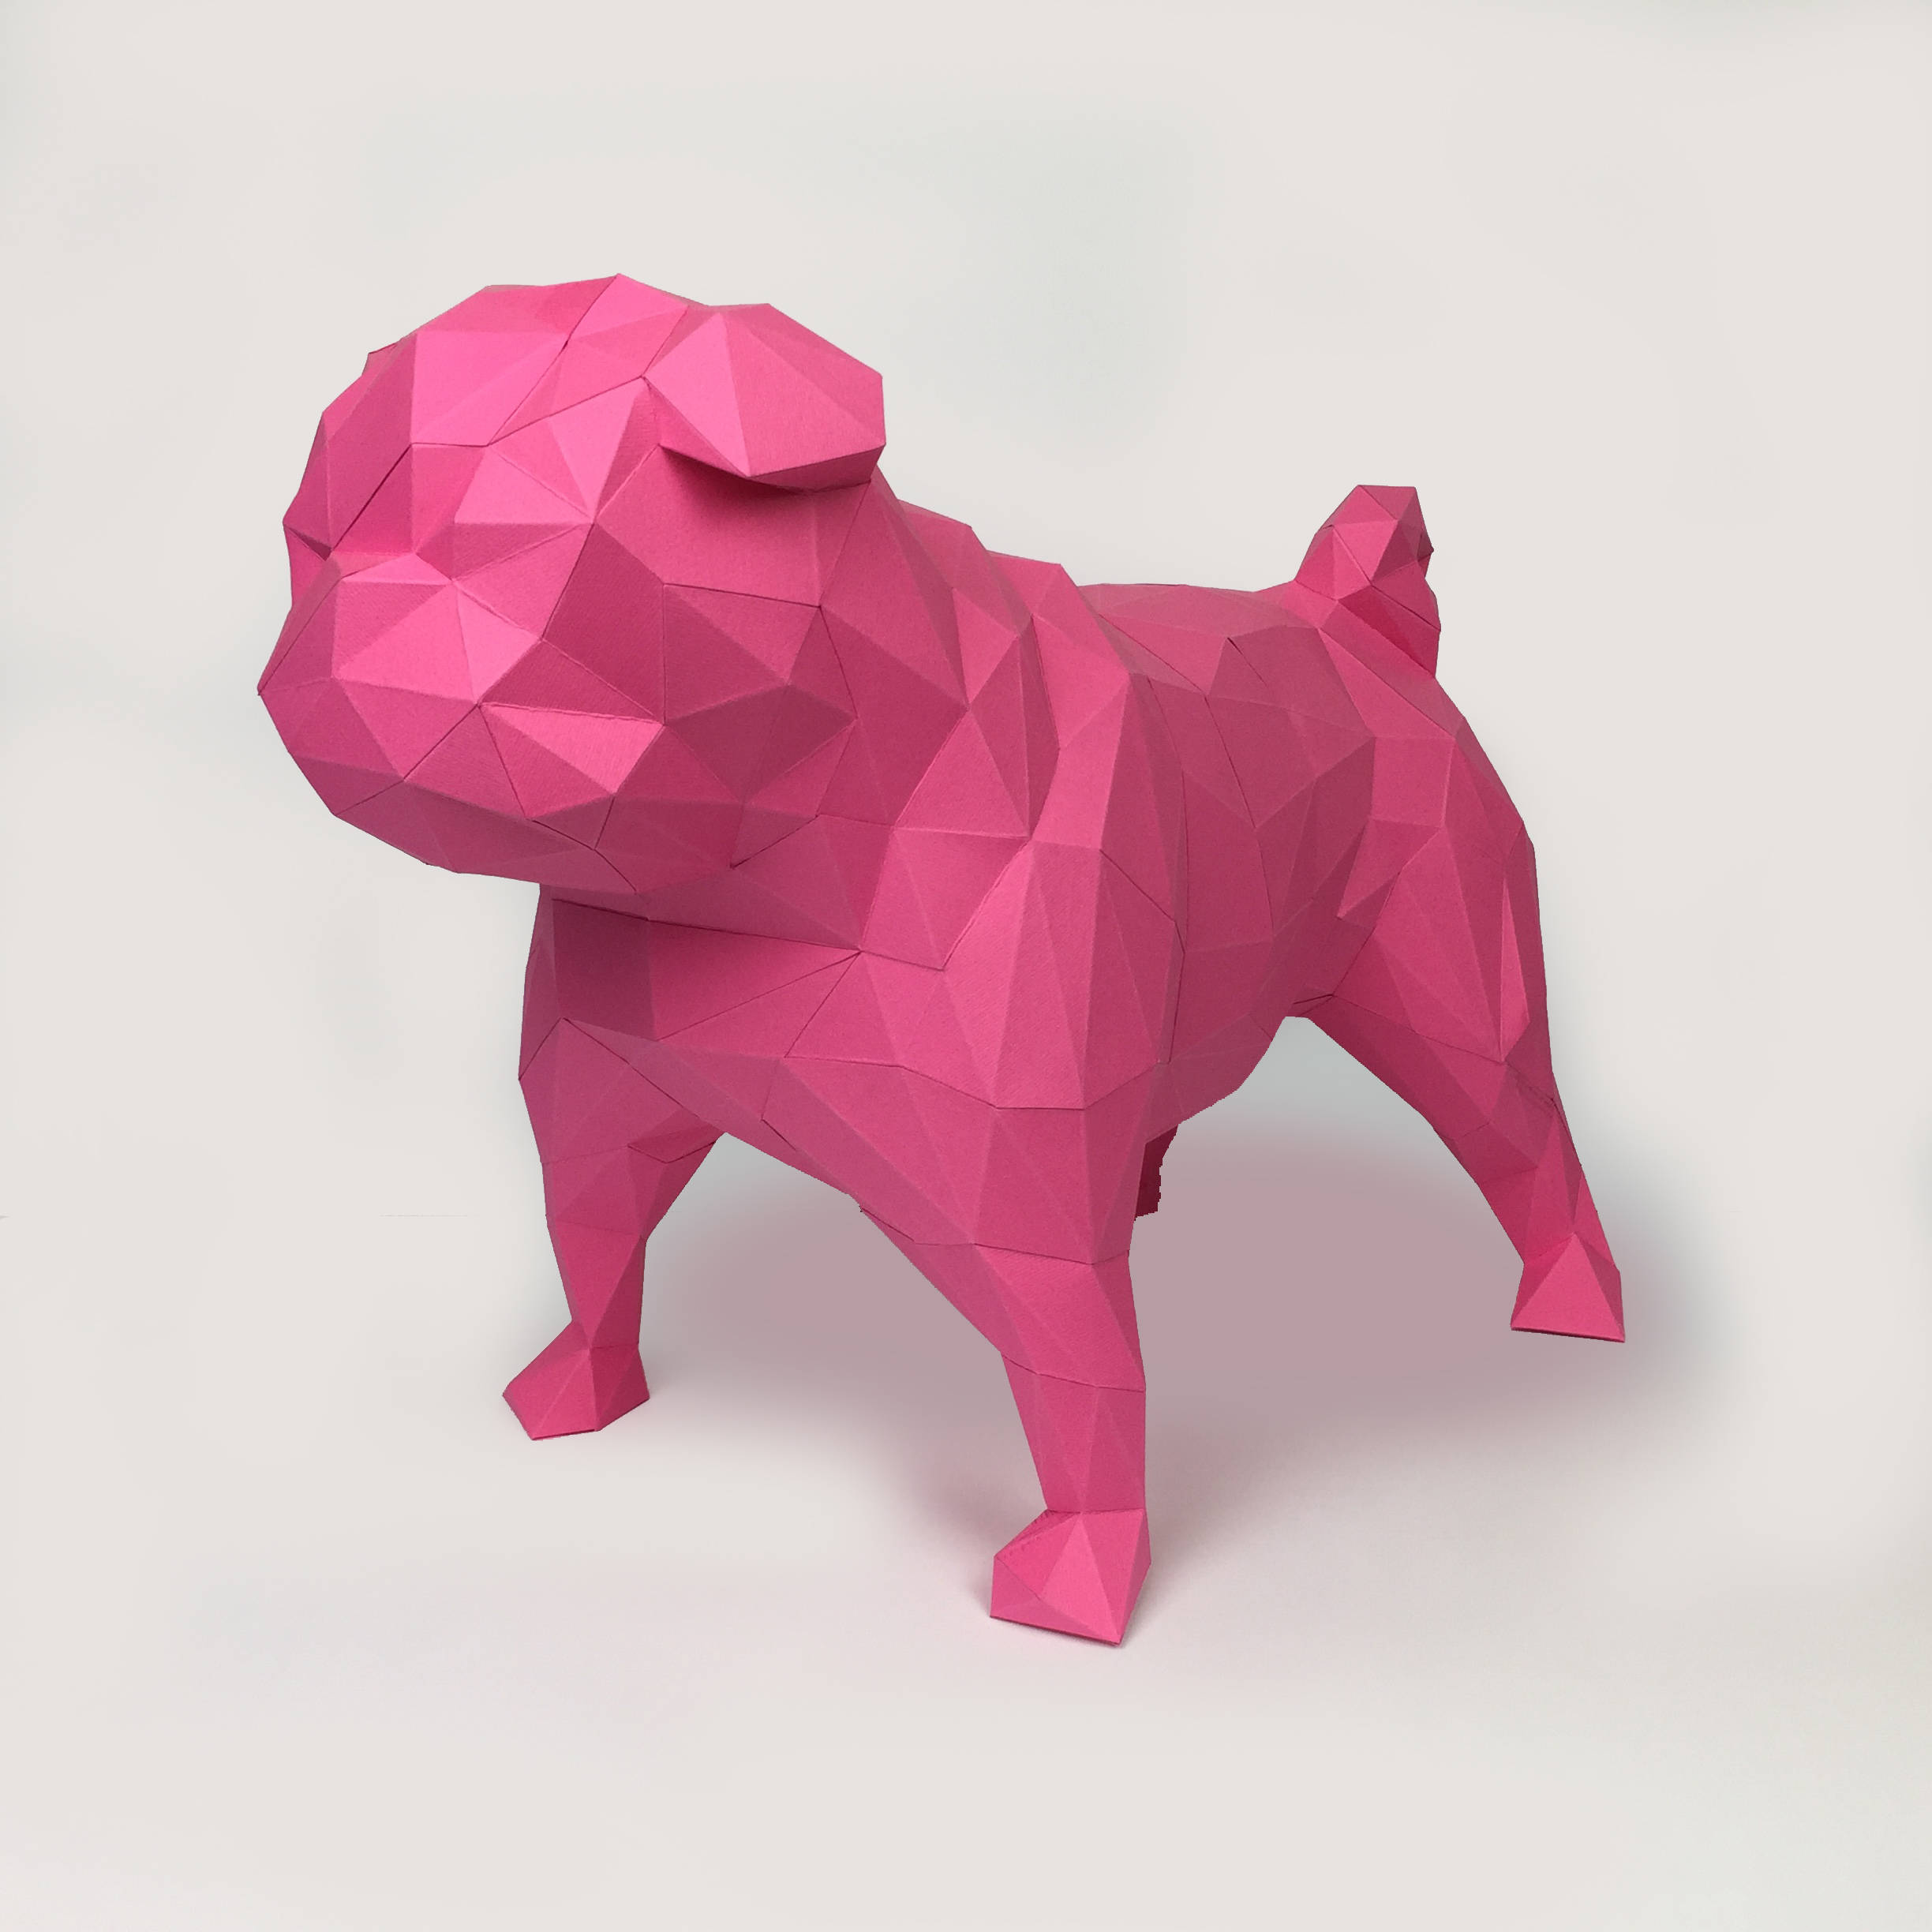 Pug Dog Papercraft, Paper Pug, Dog Statue, Puppy Pug, Paper Animals, Papertoy, Home Decor, Pug Dog, 3D papercraft model, lowpoly DIY, hobby example image 2